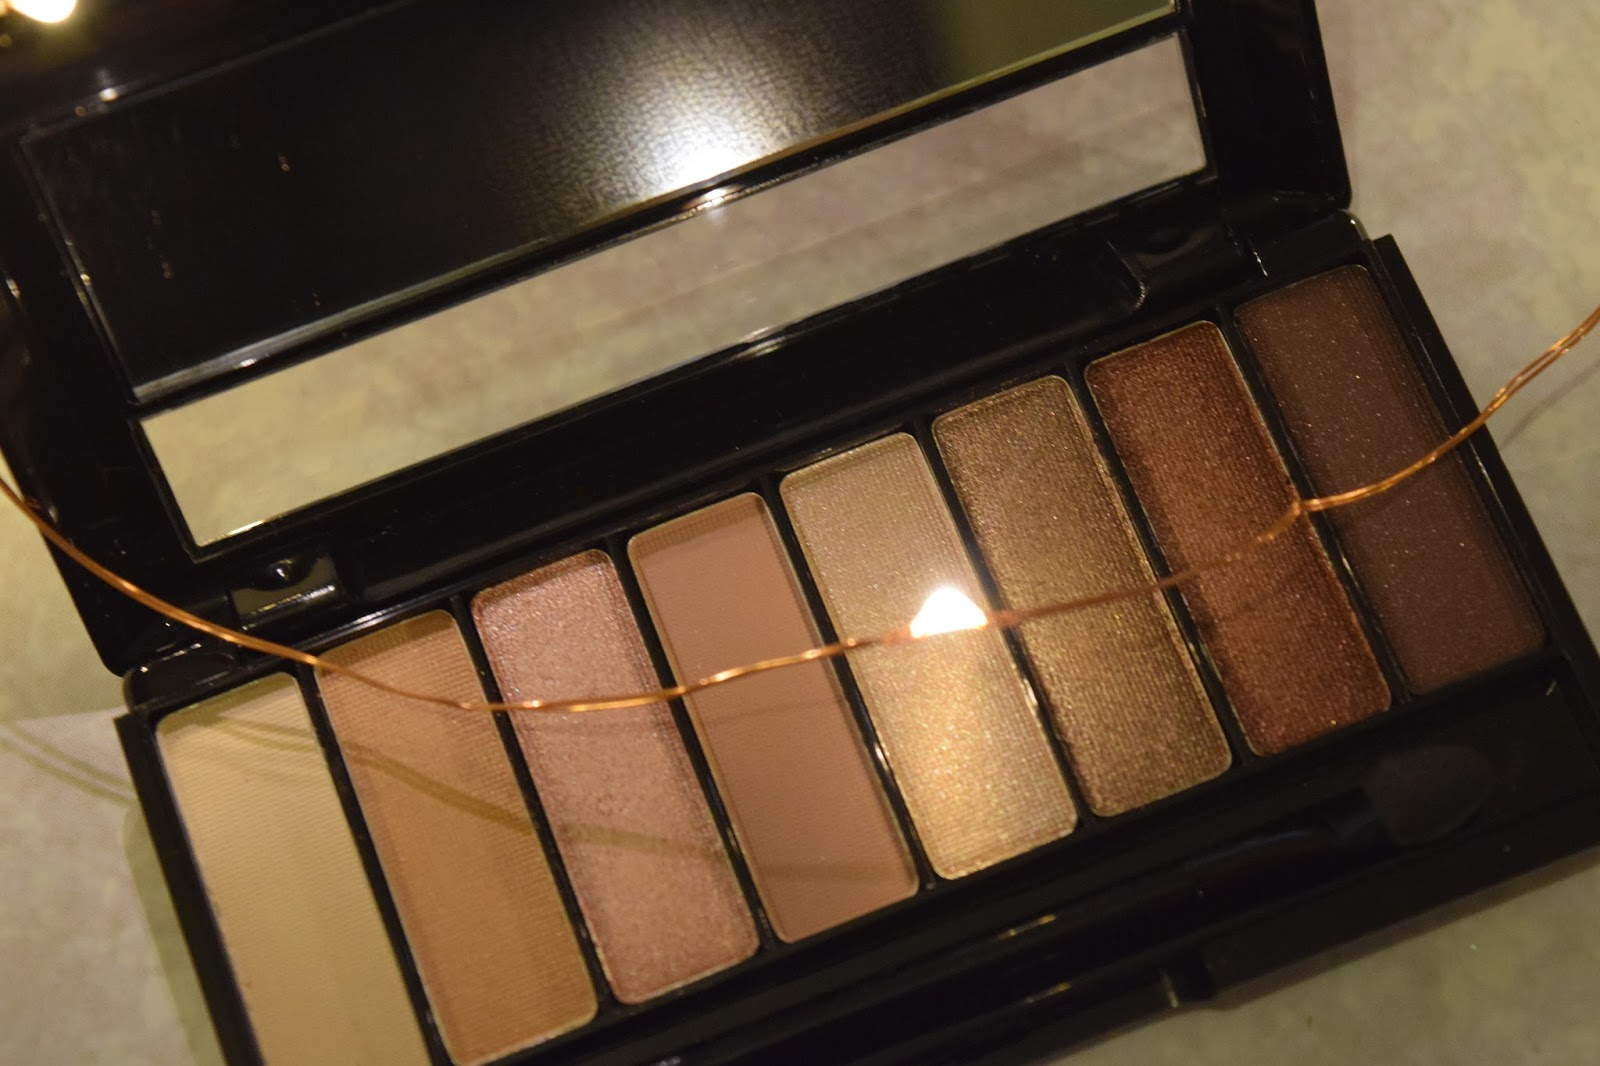 medium resolution of the rimmel magnif eyes eye contouring palette in 002 london nudes calling is actually stunning on the back it has a diagram for which order to use the